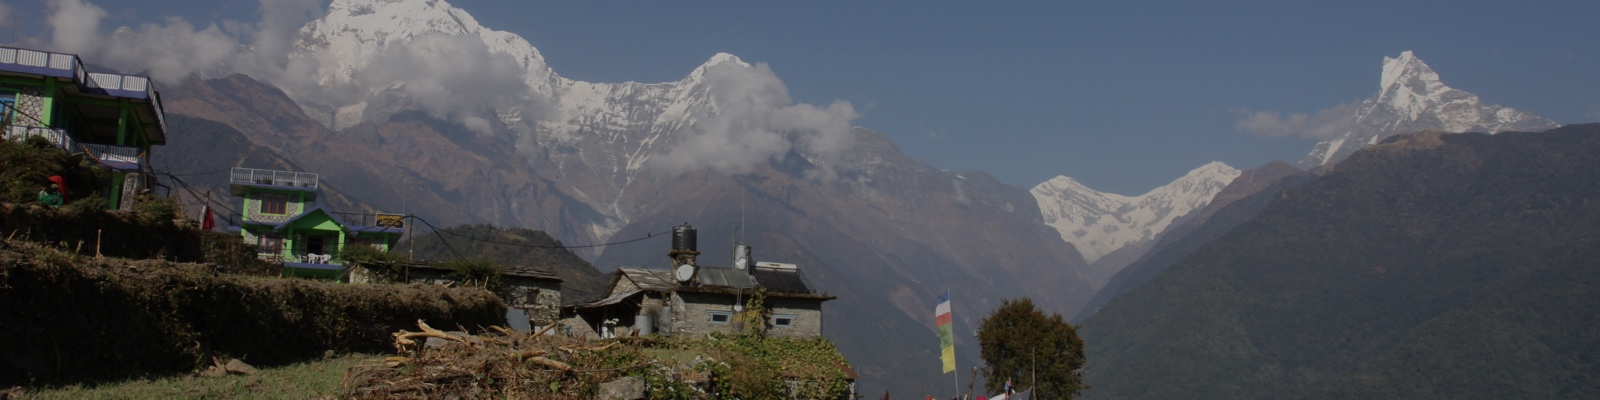 11 Nepal Destinations You Have to See to Believe